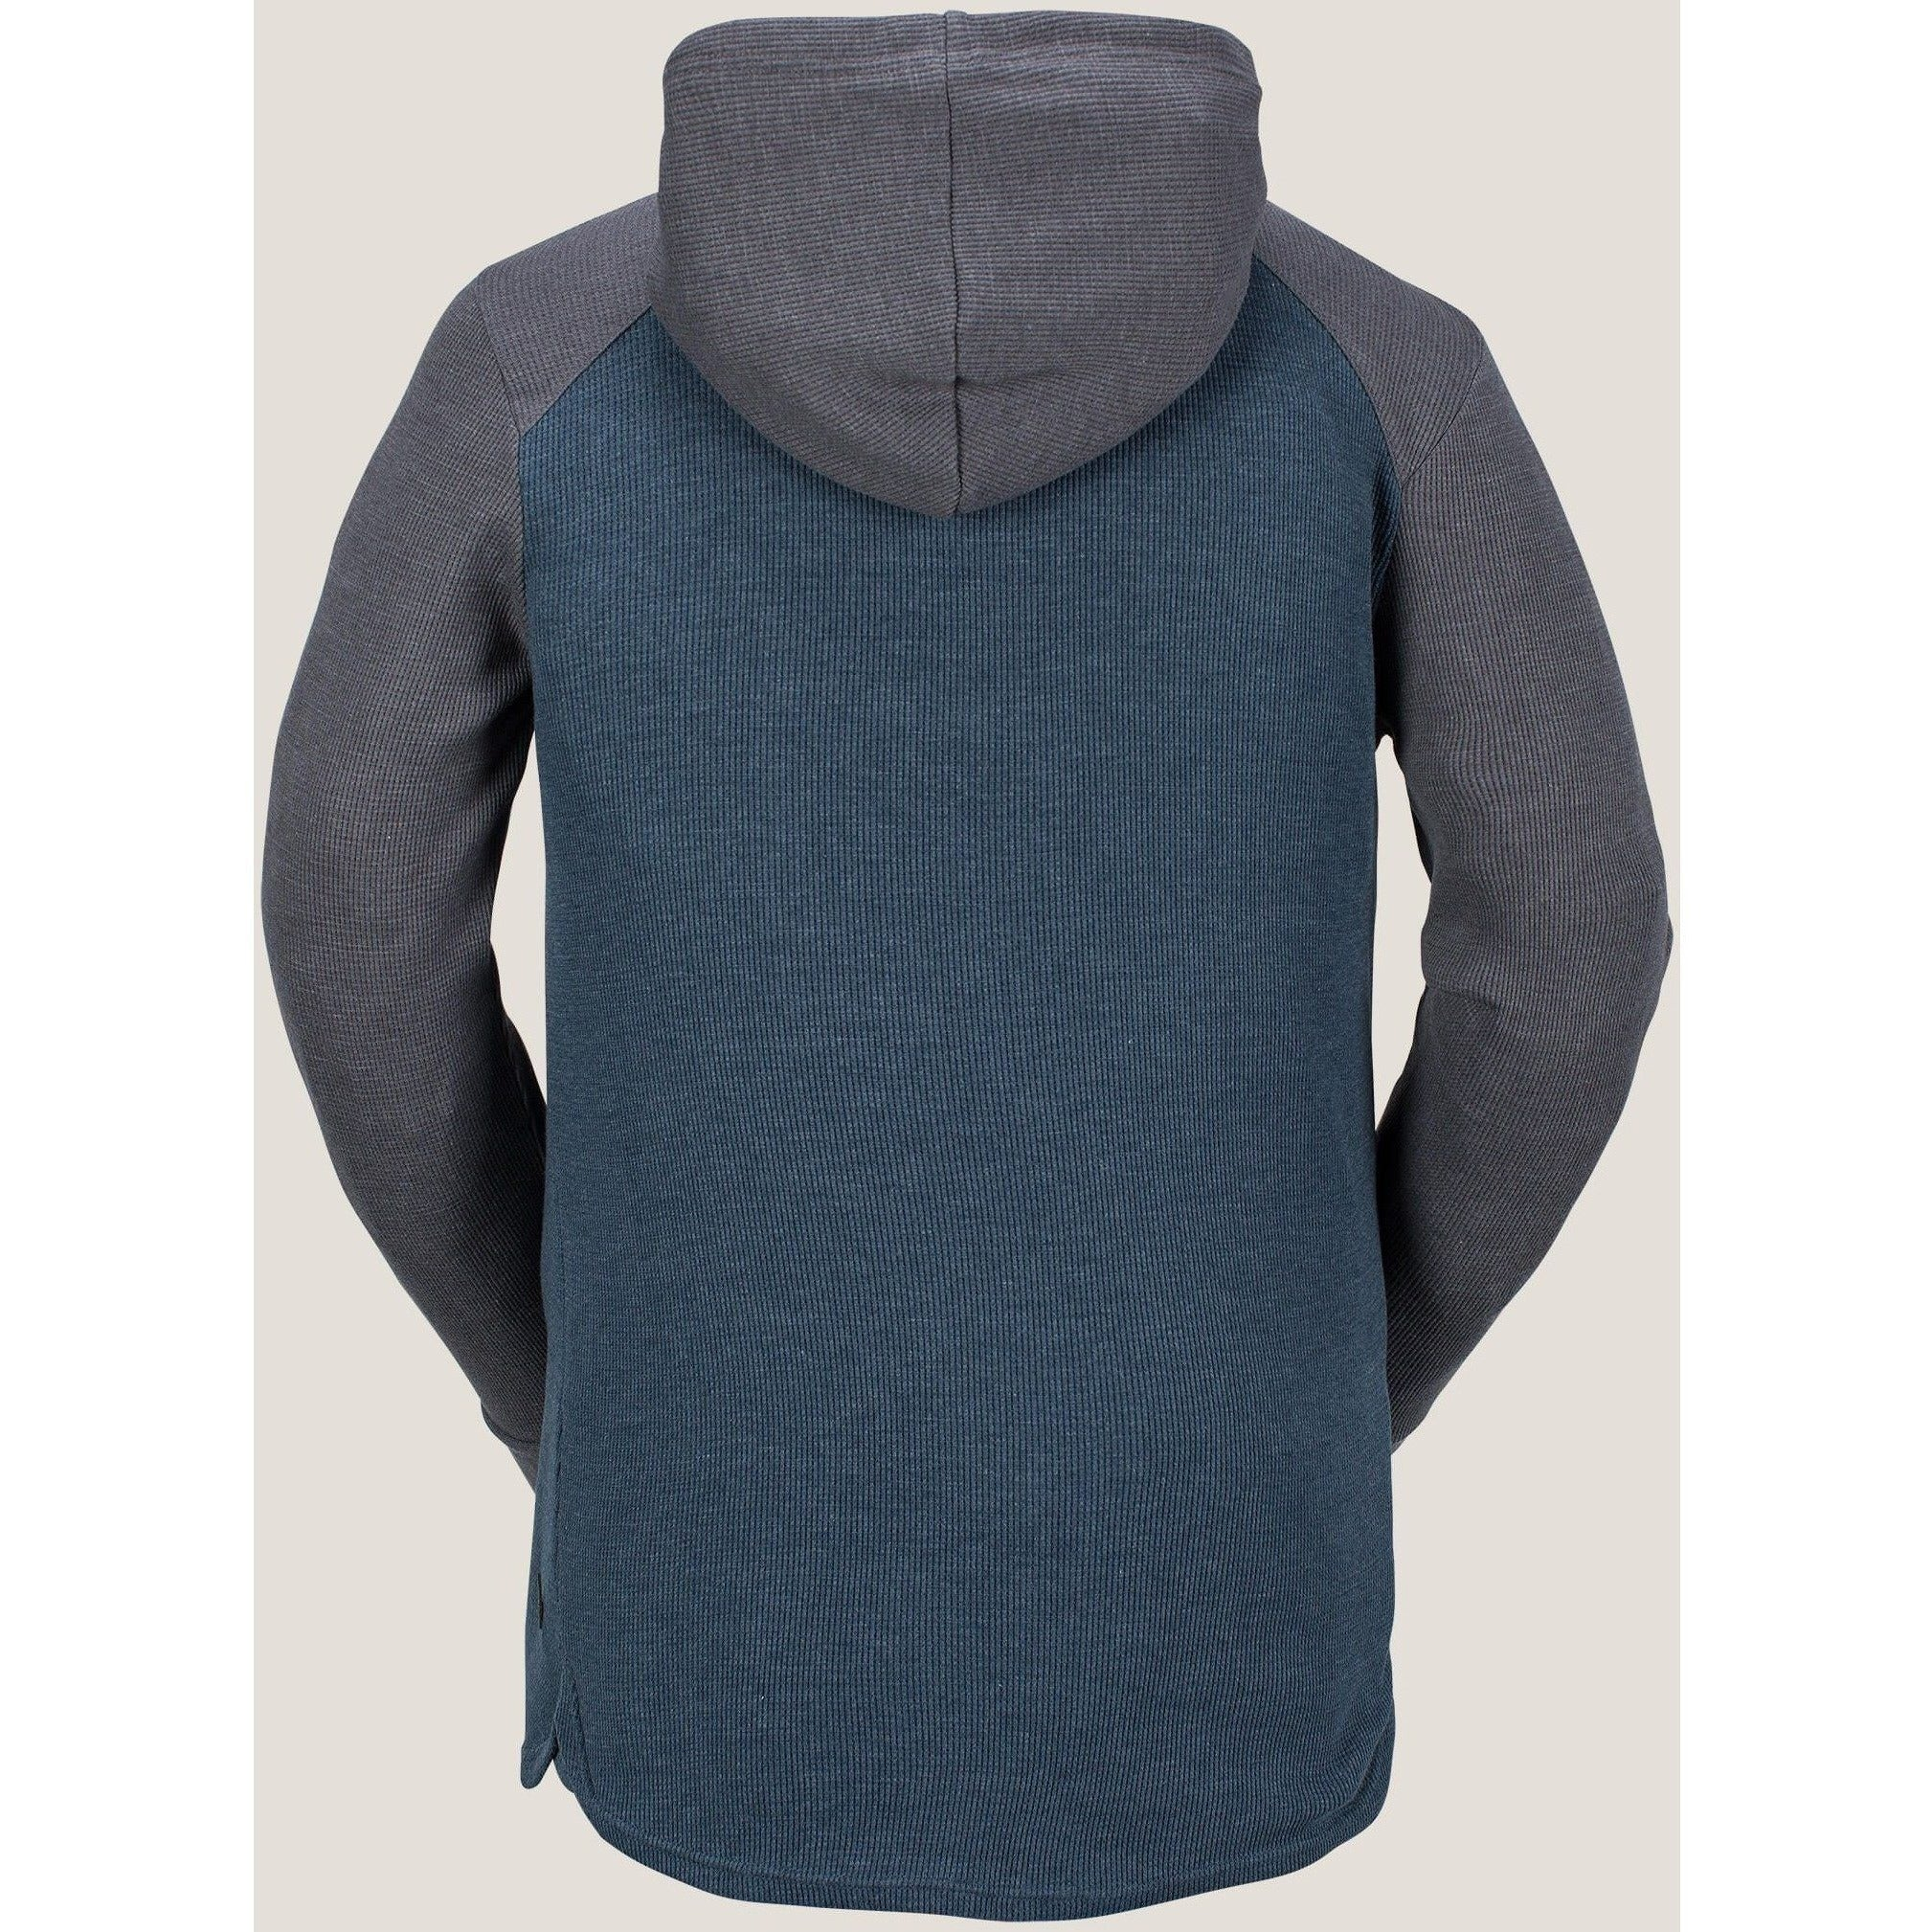 Volcom 3 Button Henley - 88 Gear